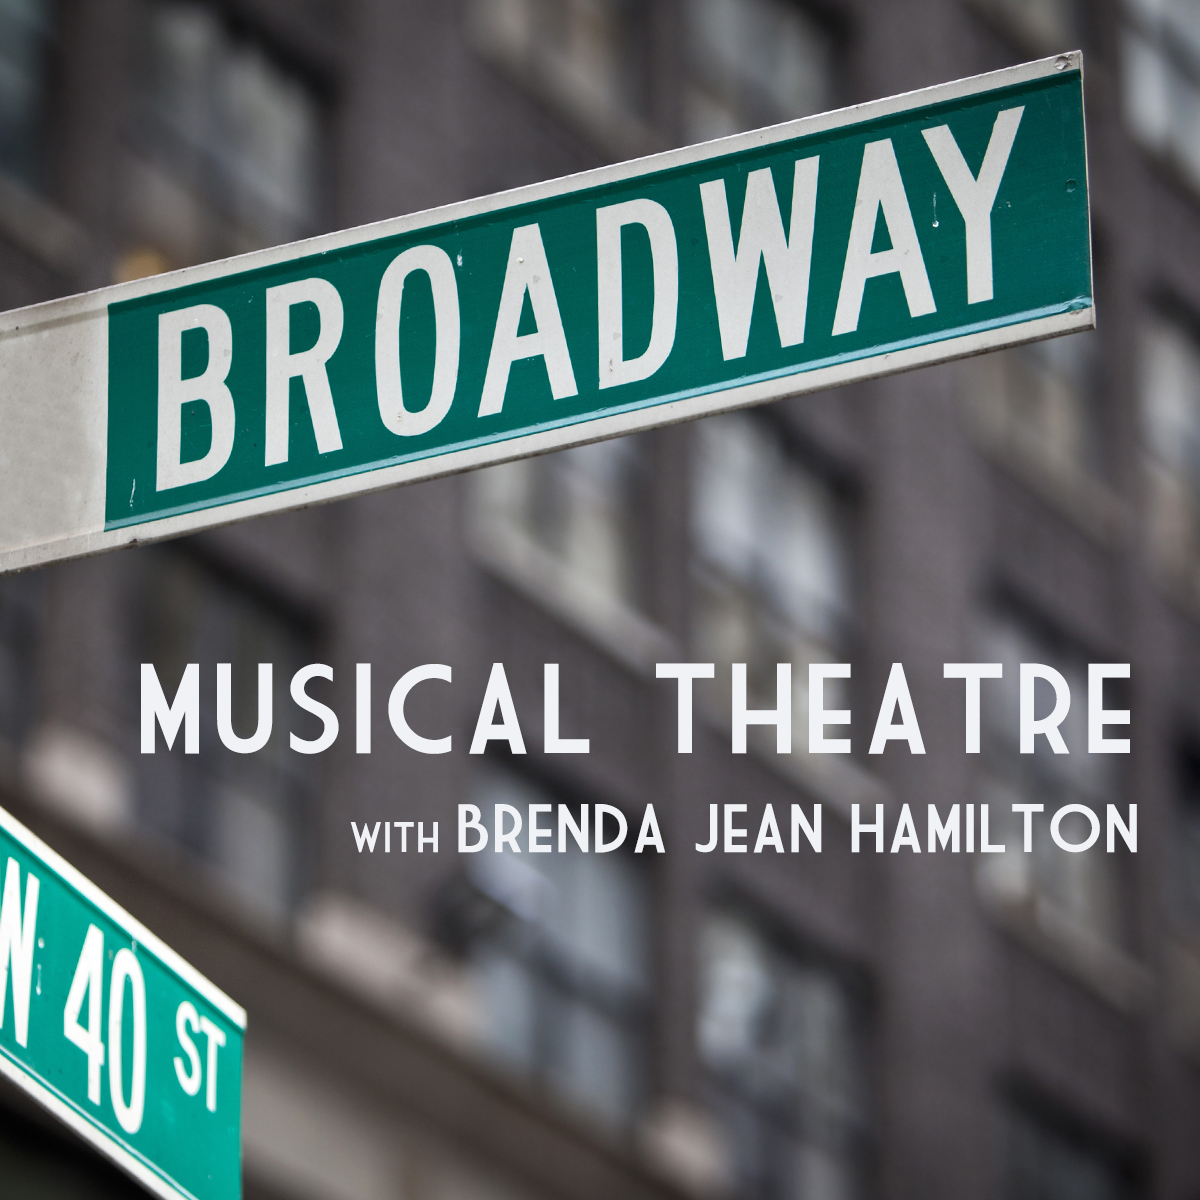 LSPA Broadway Musical Theatre Class for Middle School